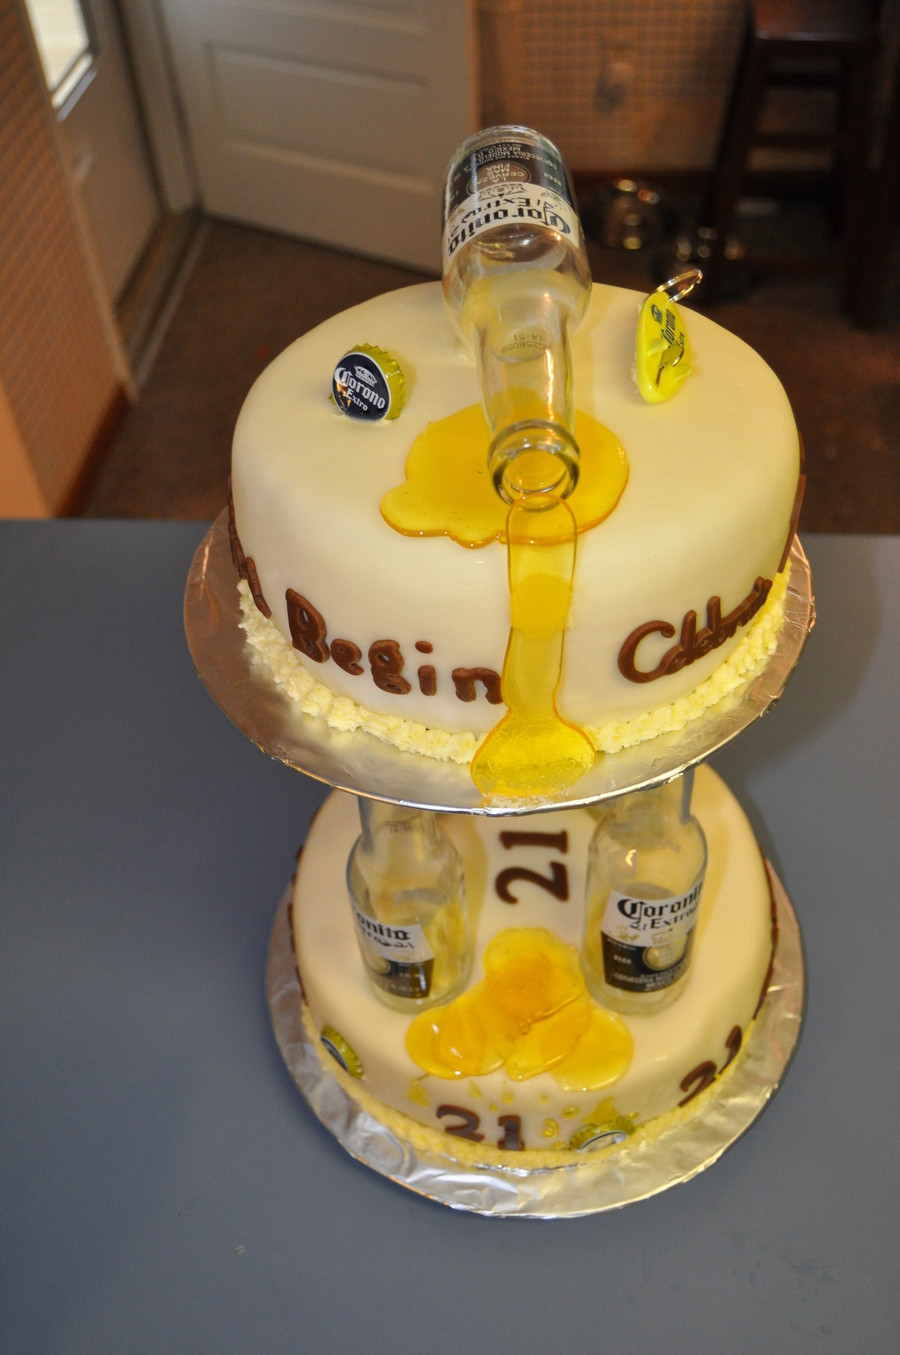 Best ideas about Birthday Beer Cake . Save or Pin 21St Birthday Beer Cake CakeCentral Now.